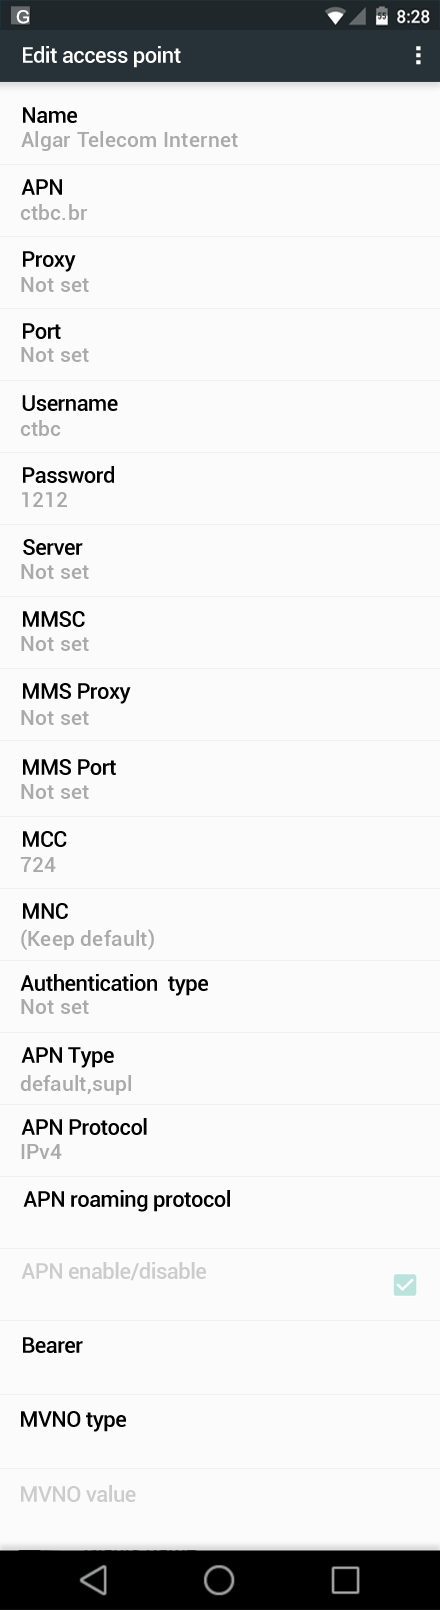 Algar Telecom Internet APN settings for Android Marshmallow screenshot